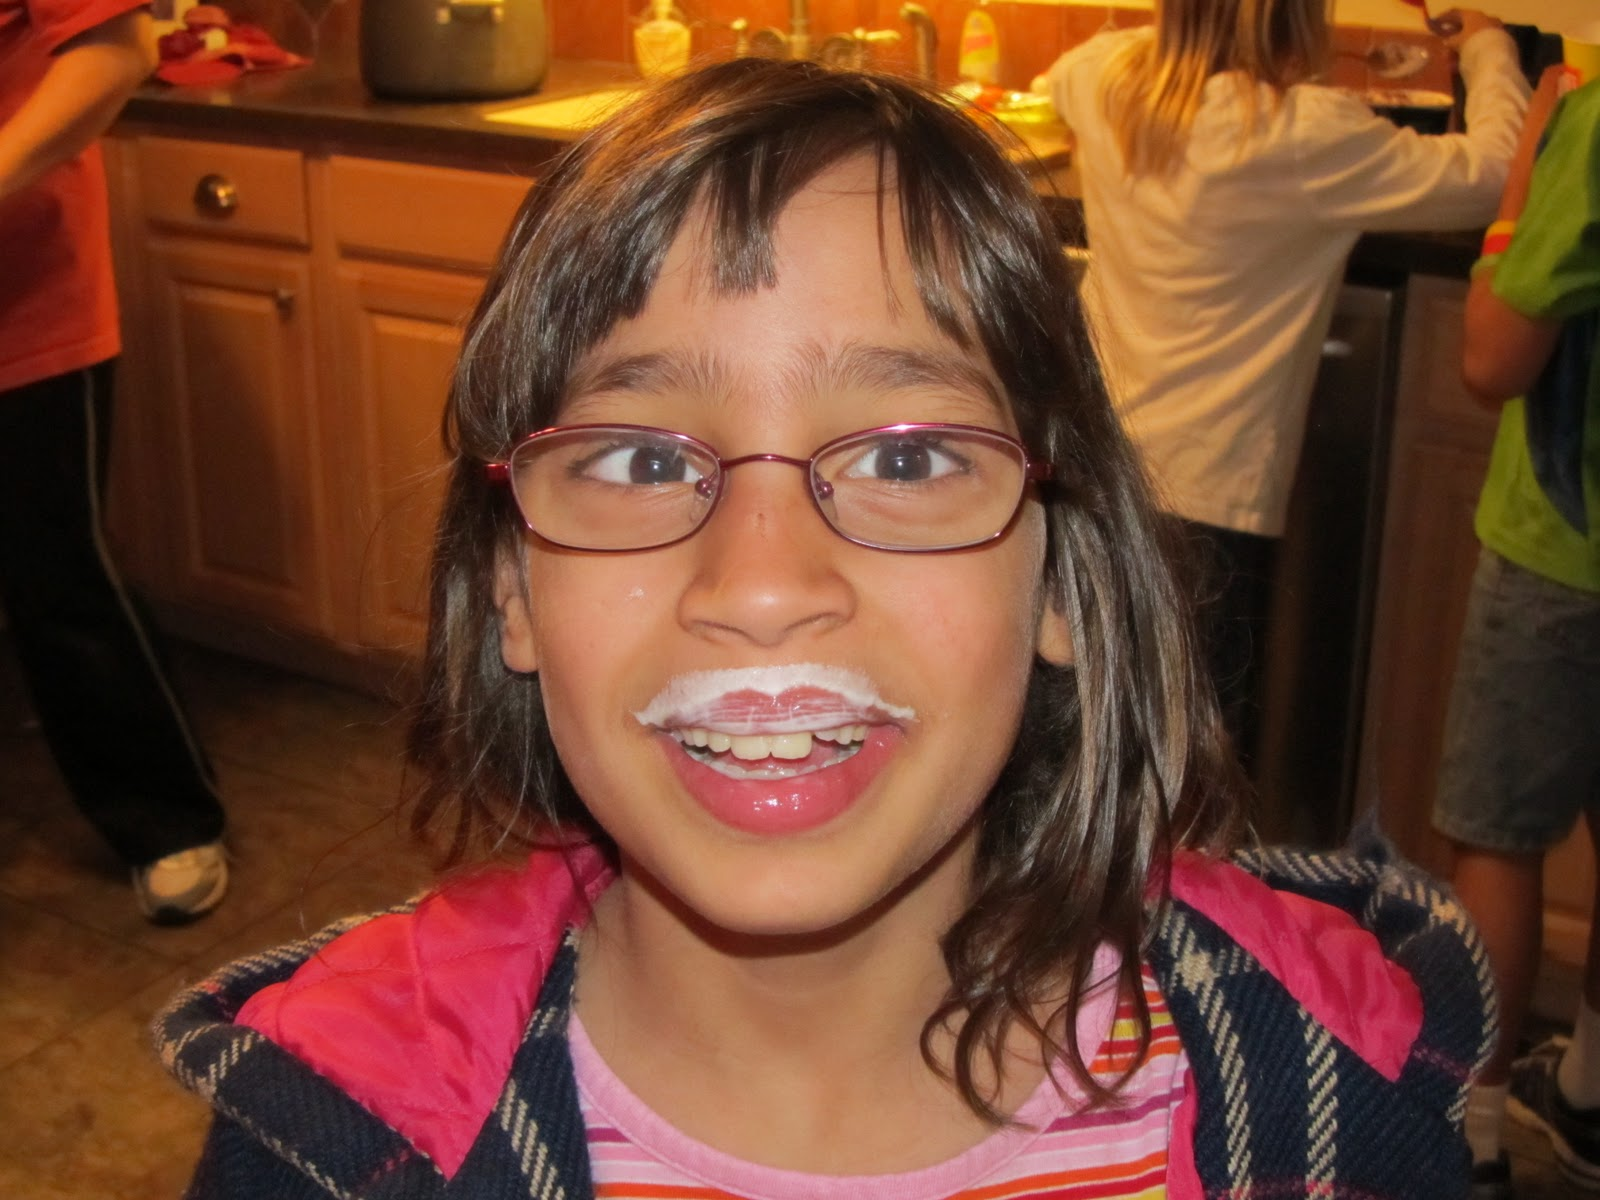 Its milk guys i promise ally lyons - Irina With Her Milk Mustache Download Image Its Milk Guys I Promise Ally Lyons